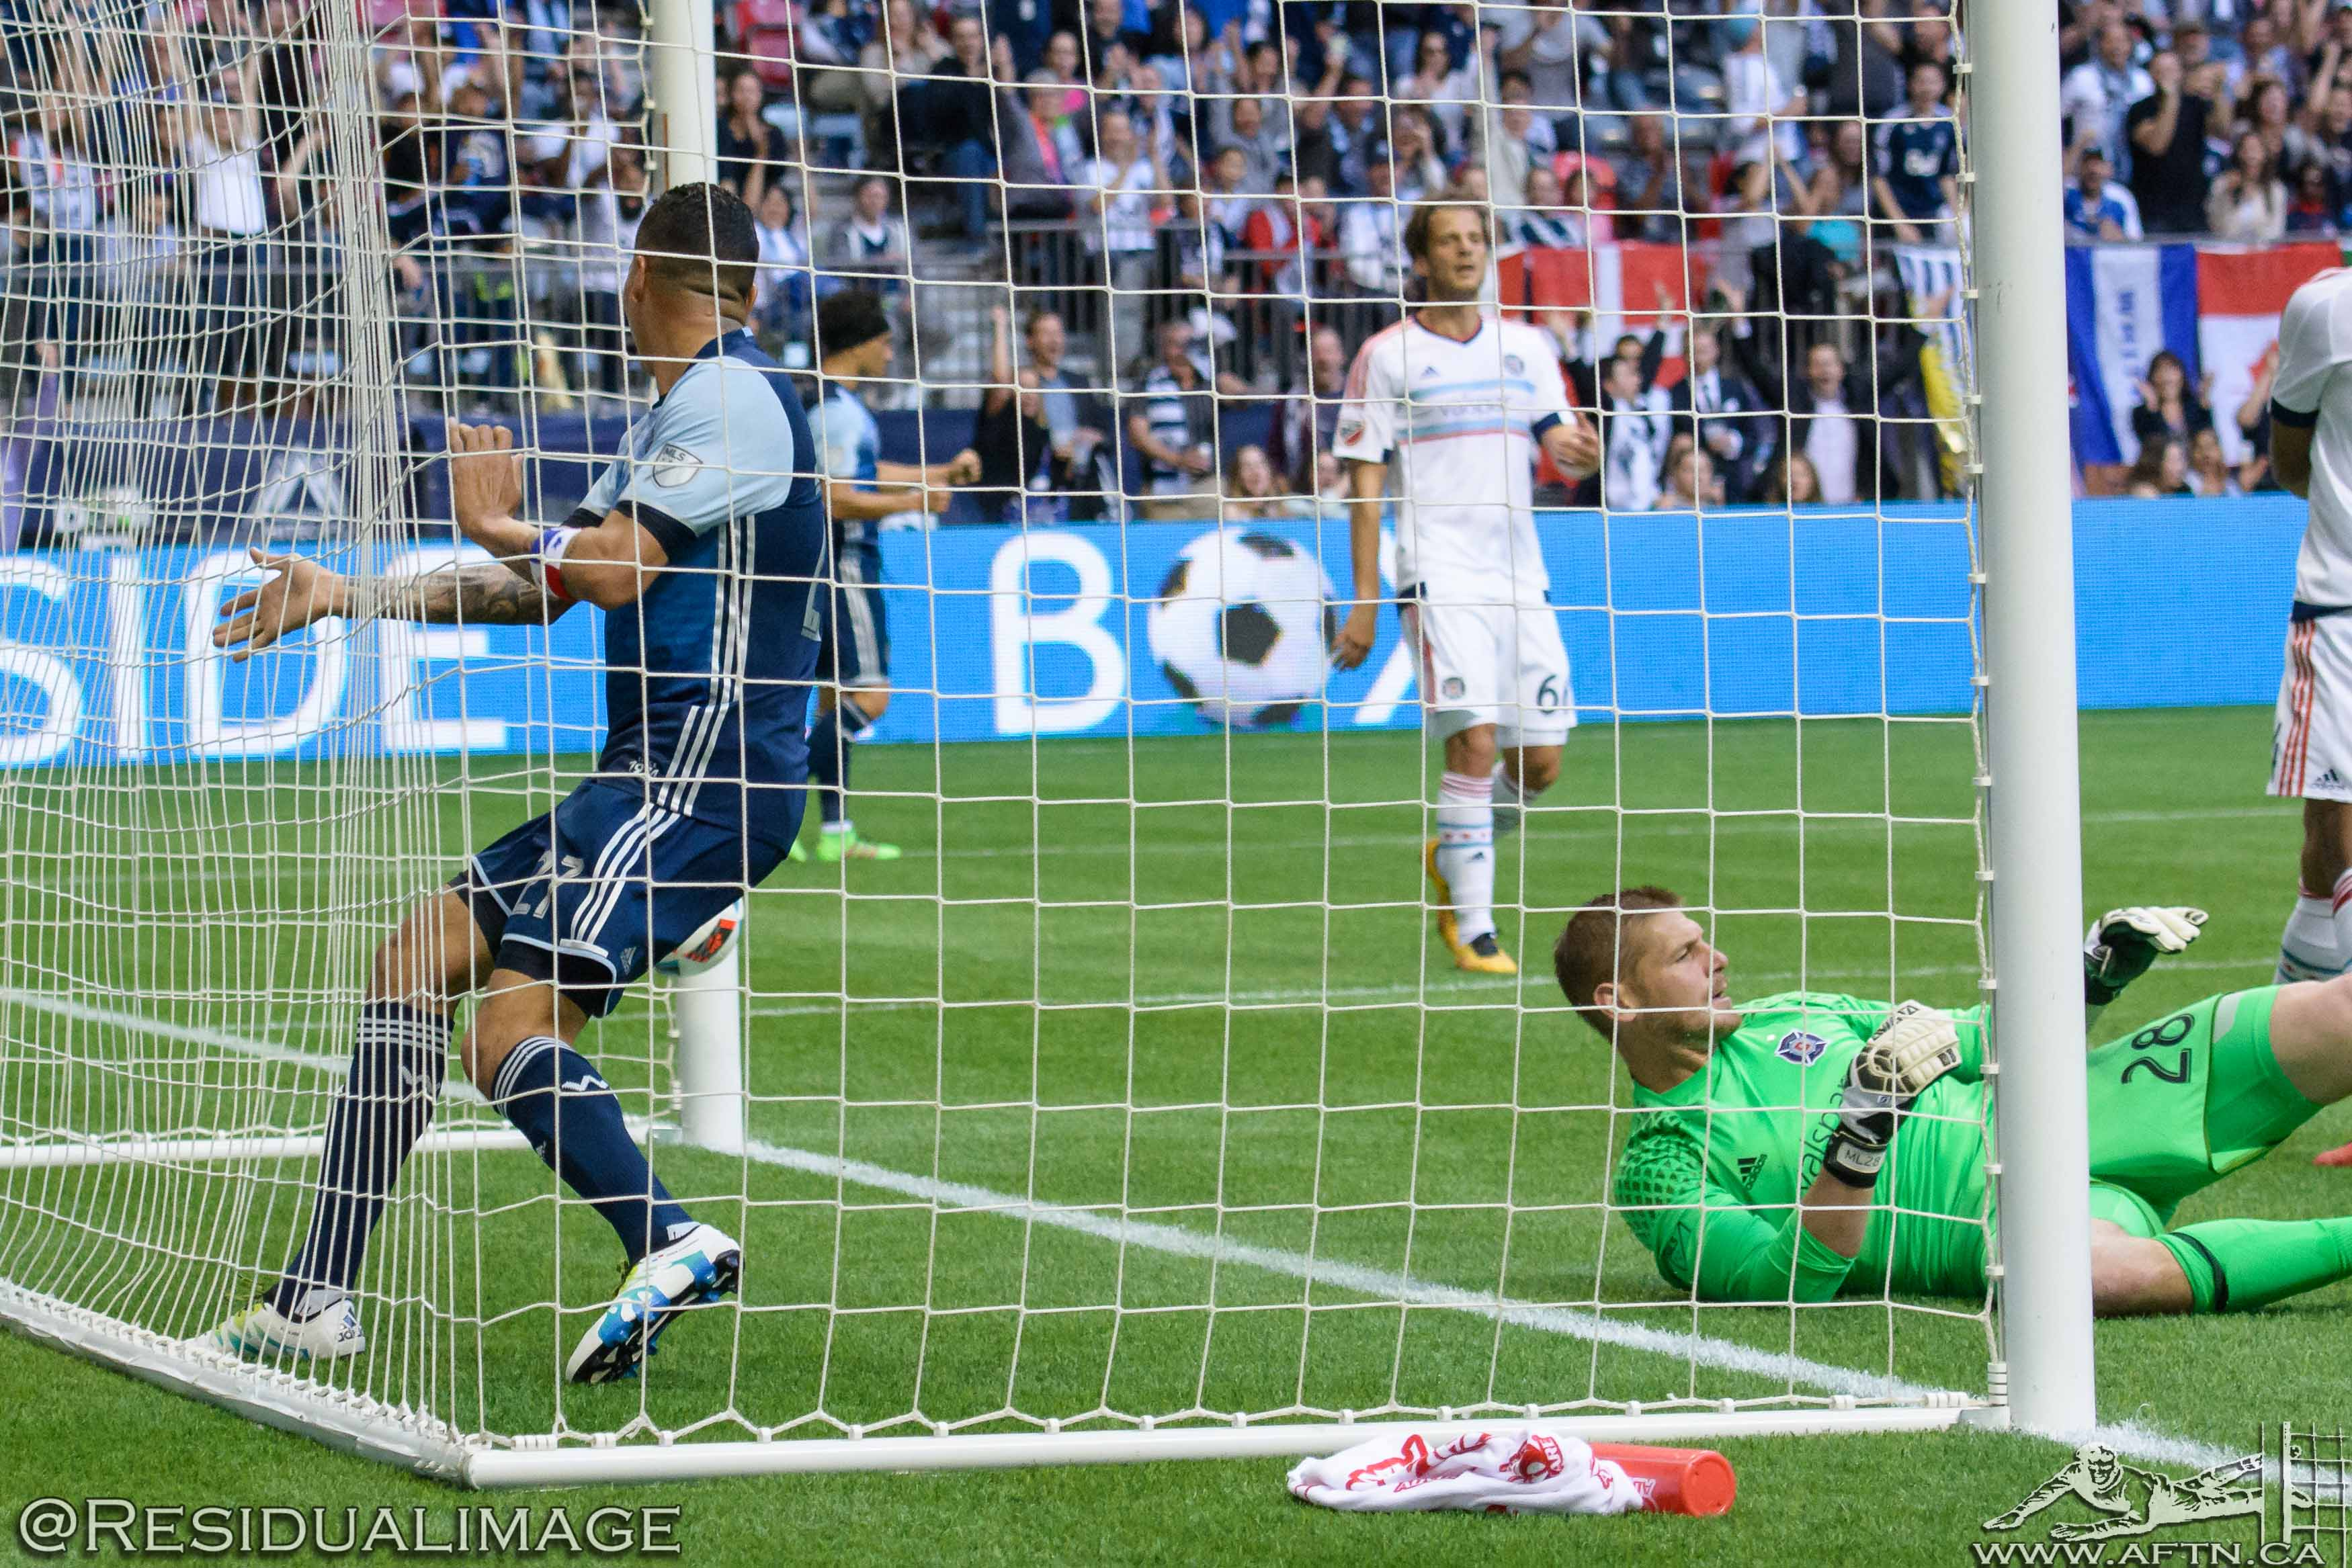 Vancouver Whitecaps v Chicago Fire - 11052016 (81)